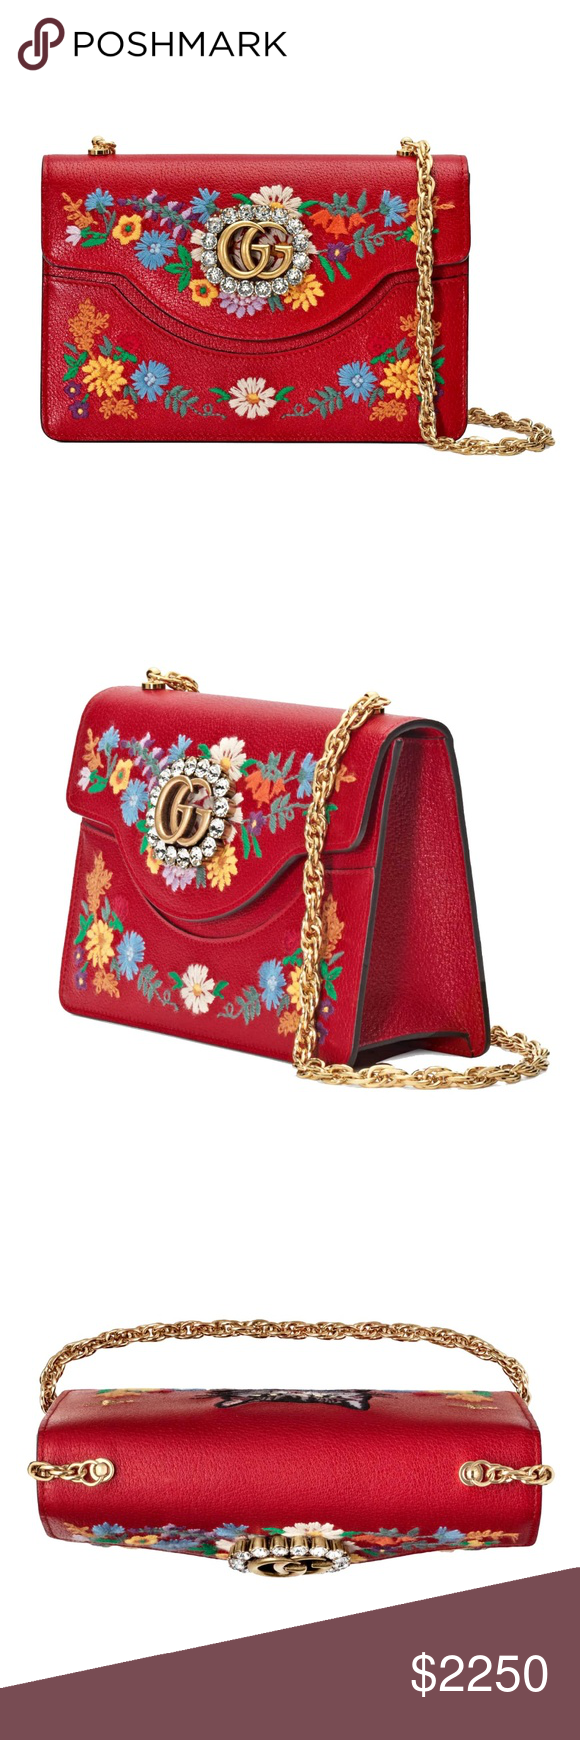 88f347b7e686 New Gucci Small Linea Ricami Floral Embroidered SAME DAY SHIPPING (ALL MY  ITEMS ARE IN STOCK). USPS 1-3 DAYS PRIORITY MAIL Authentic Made in Italy  New, ...